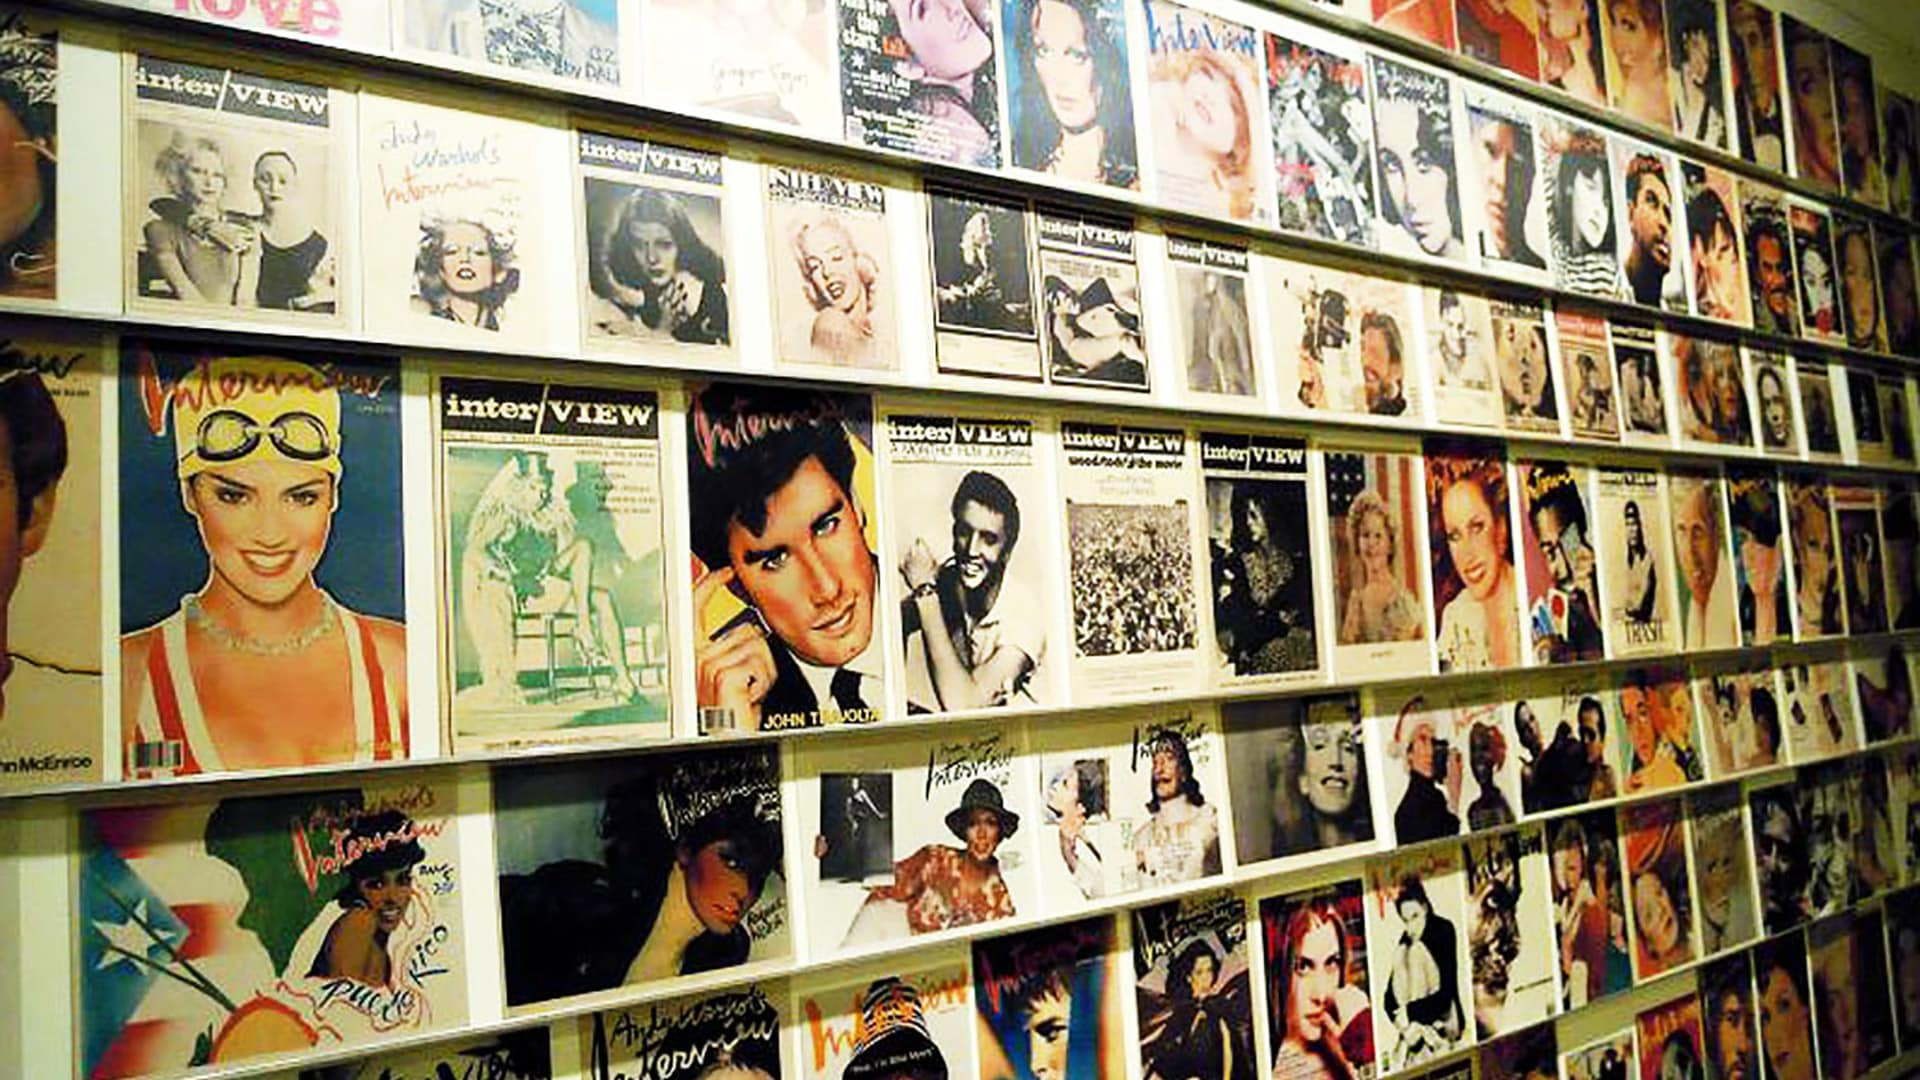 A display in the Andy Warhol Museum, Pittsburgh. Photo by Becca923 via Flickr